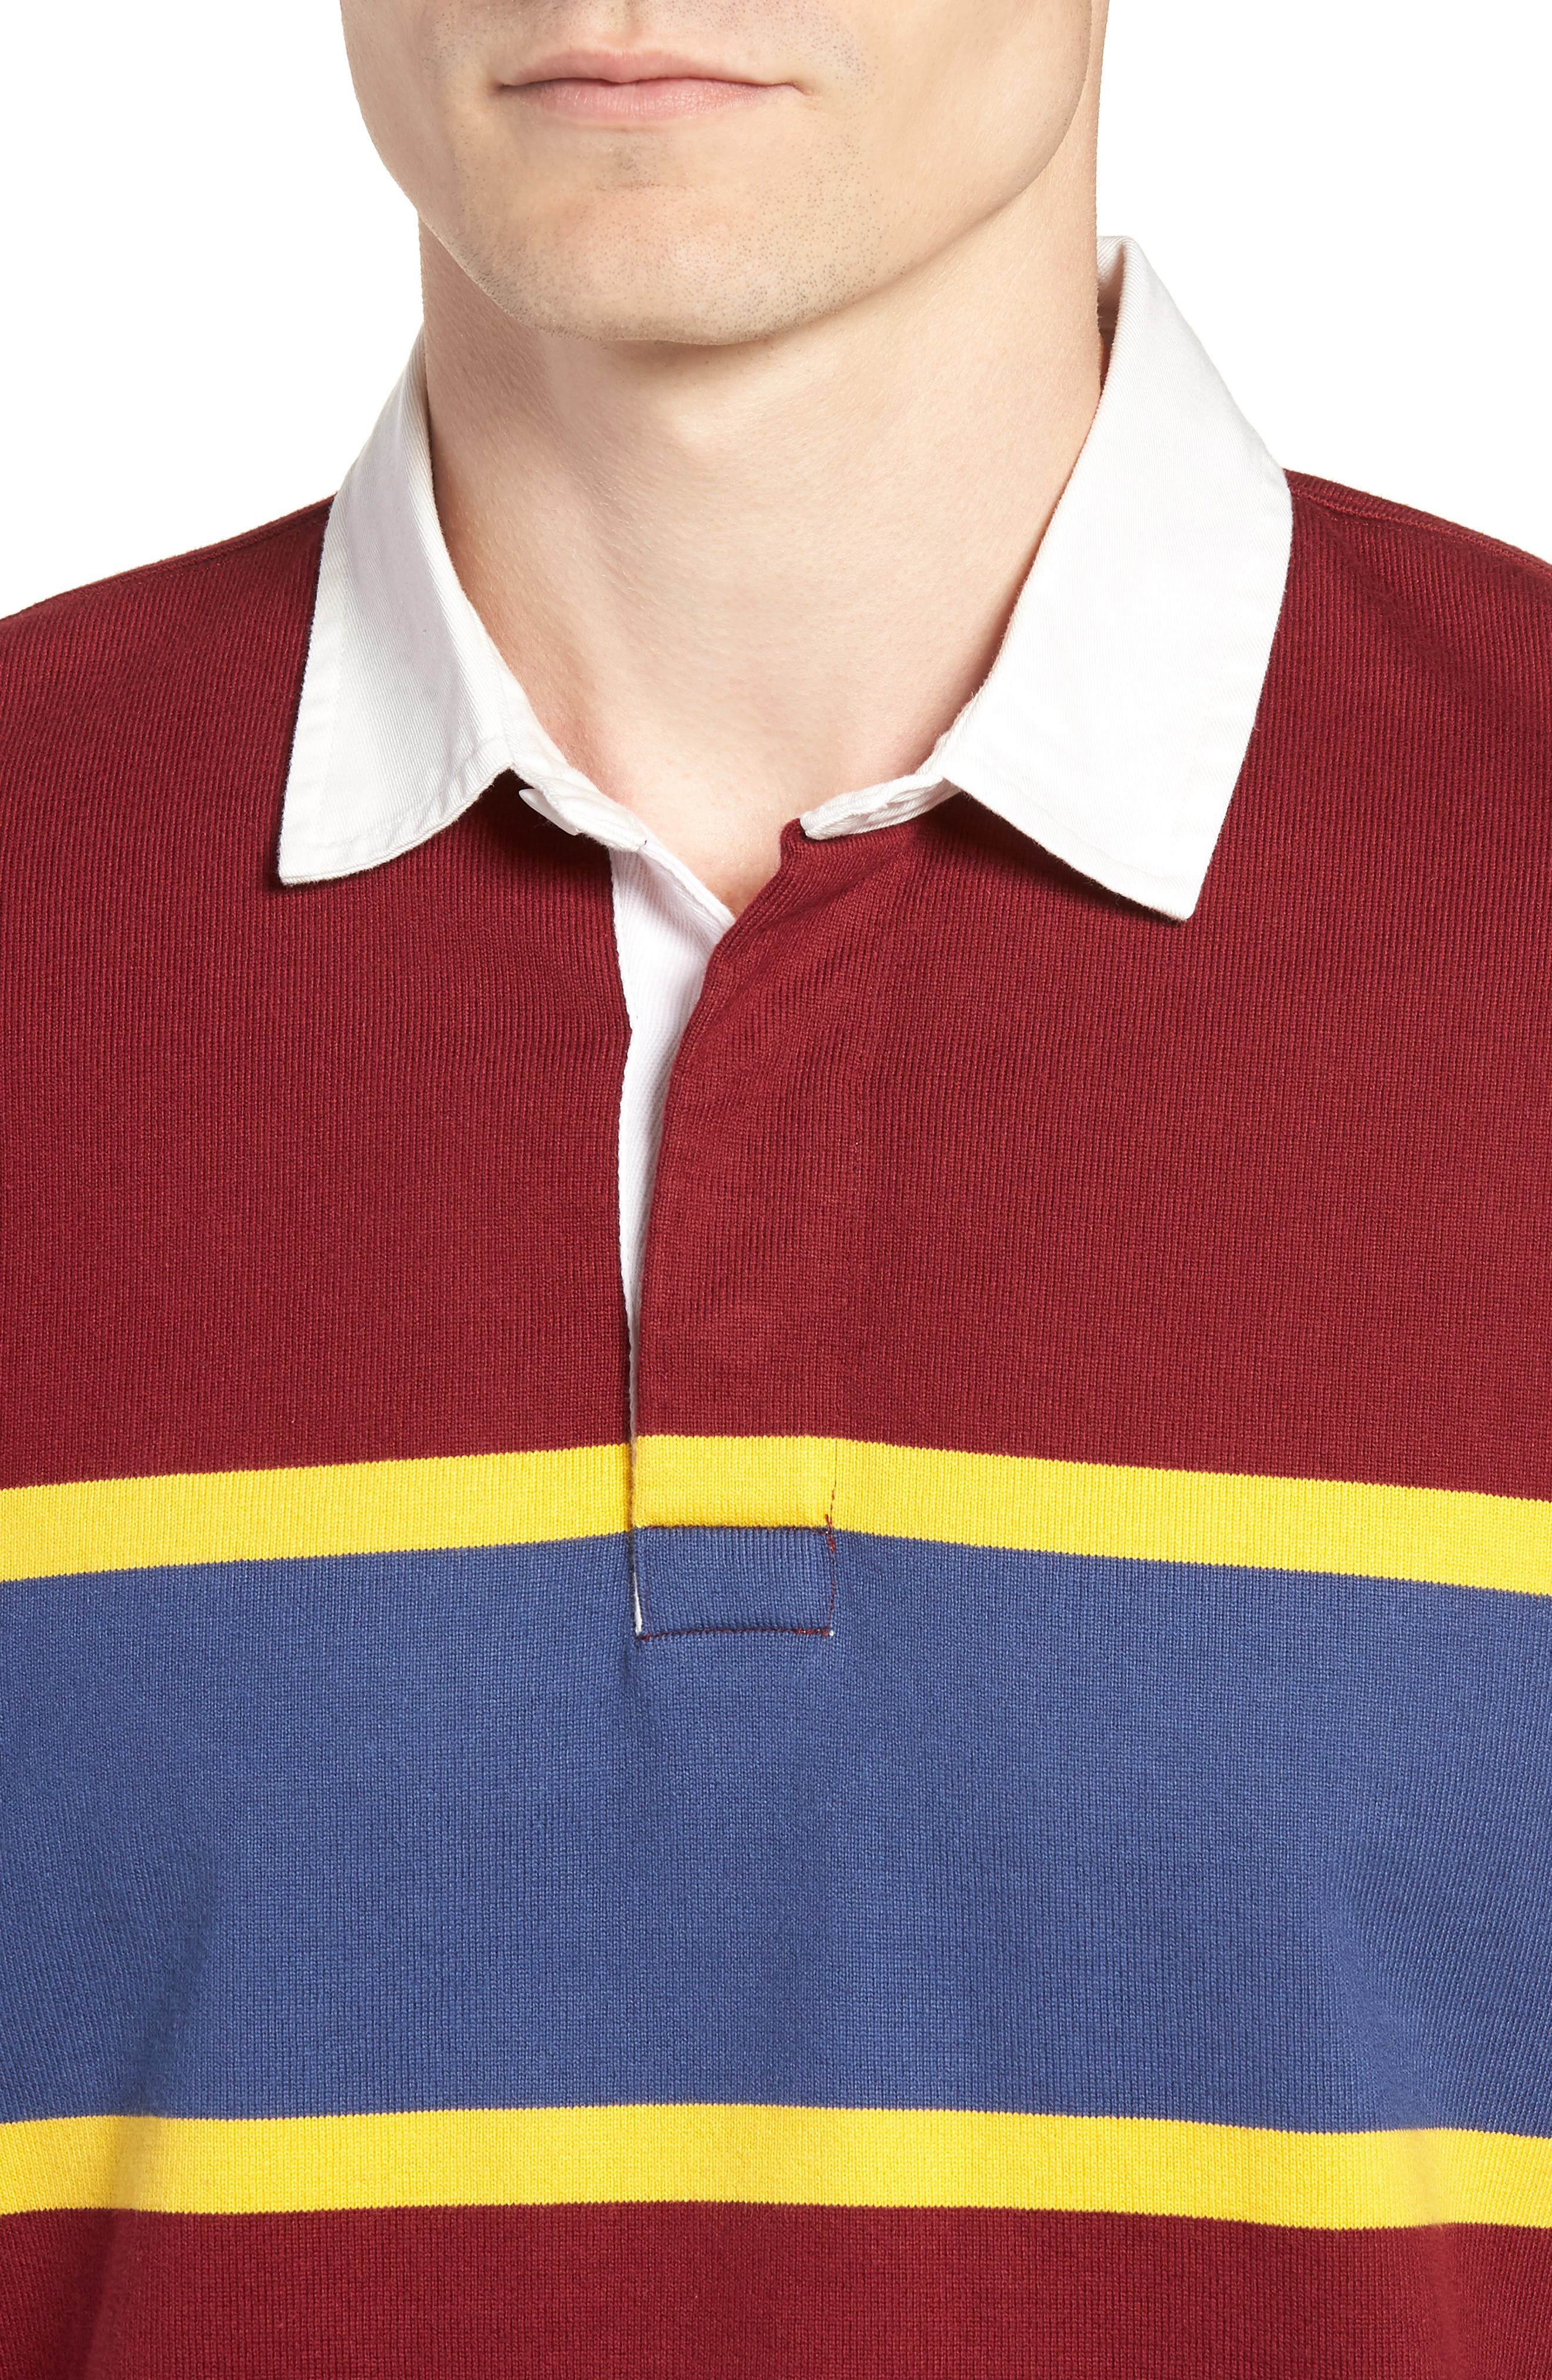 1984 Rugby Shirt,                             Alternate thumbnail 4, color,                             930